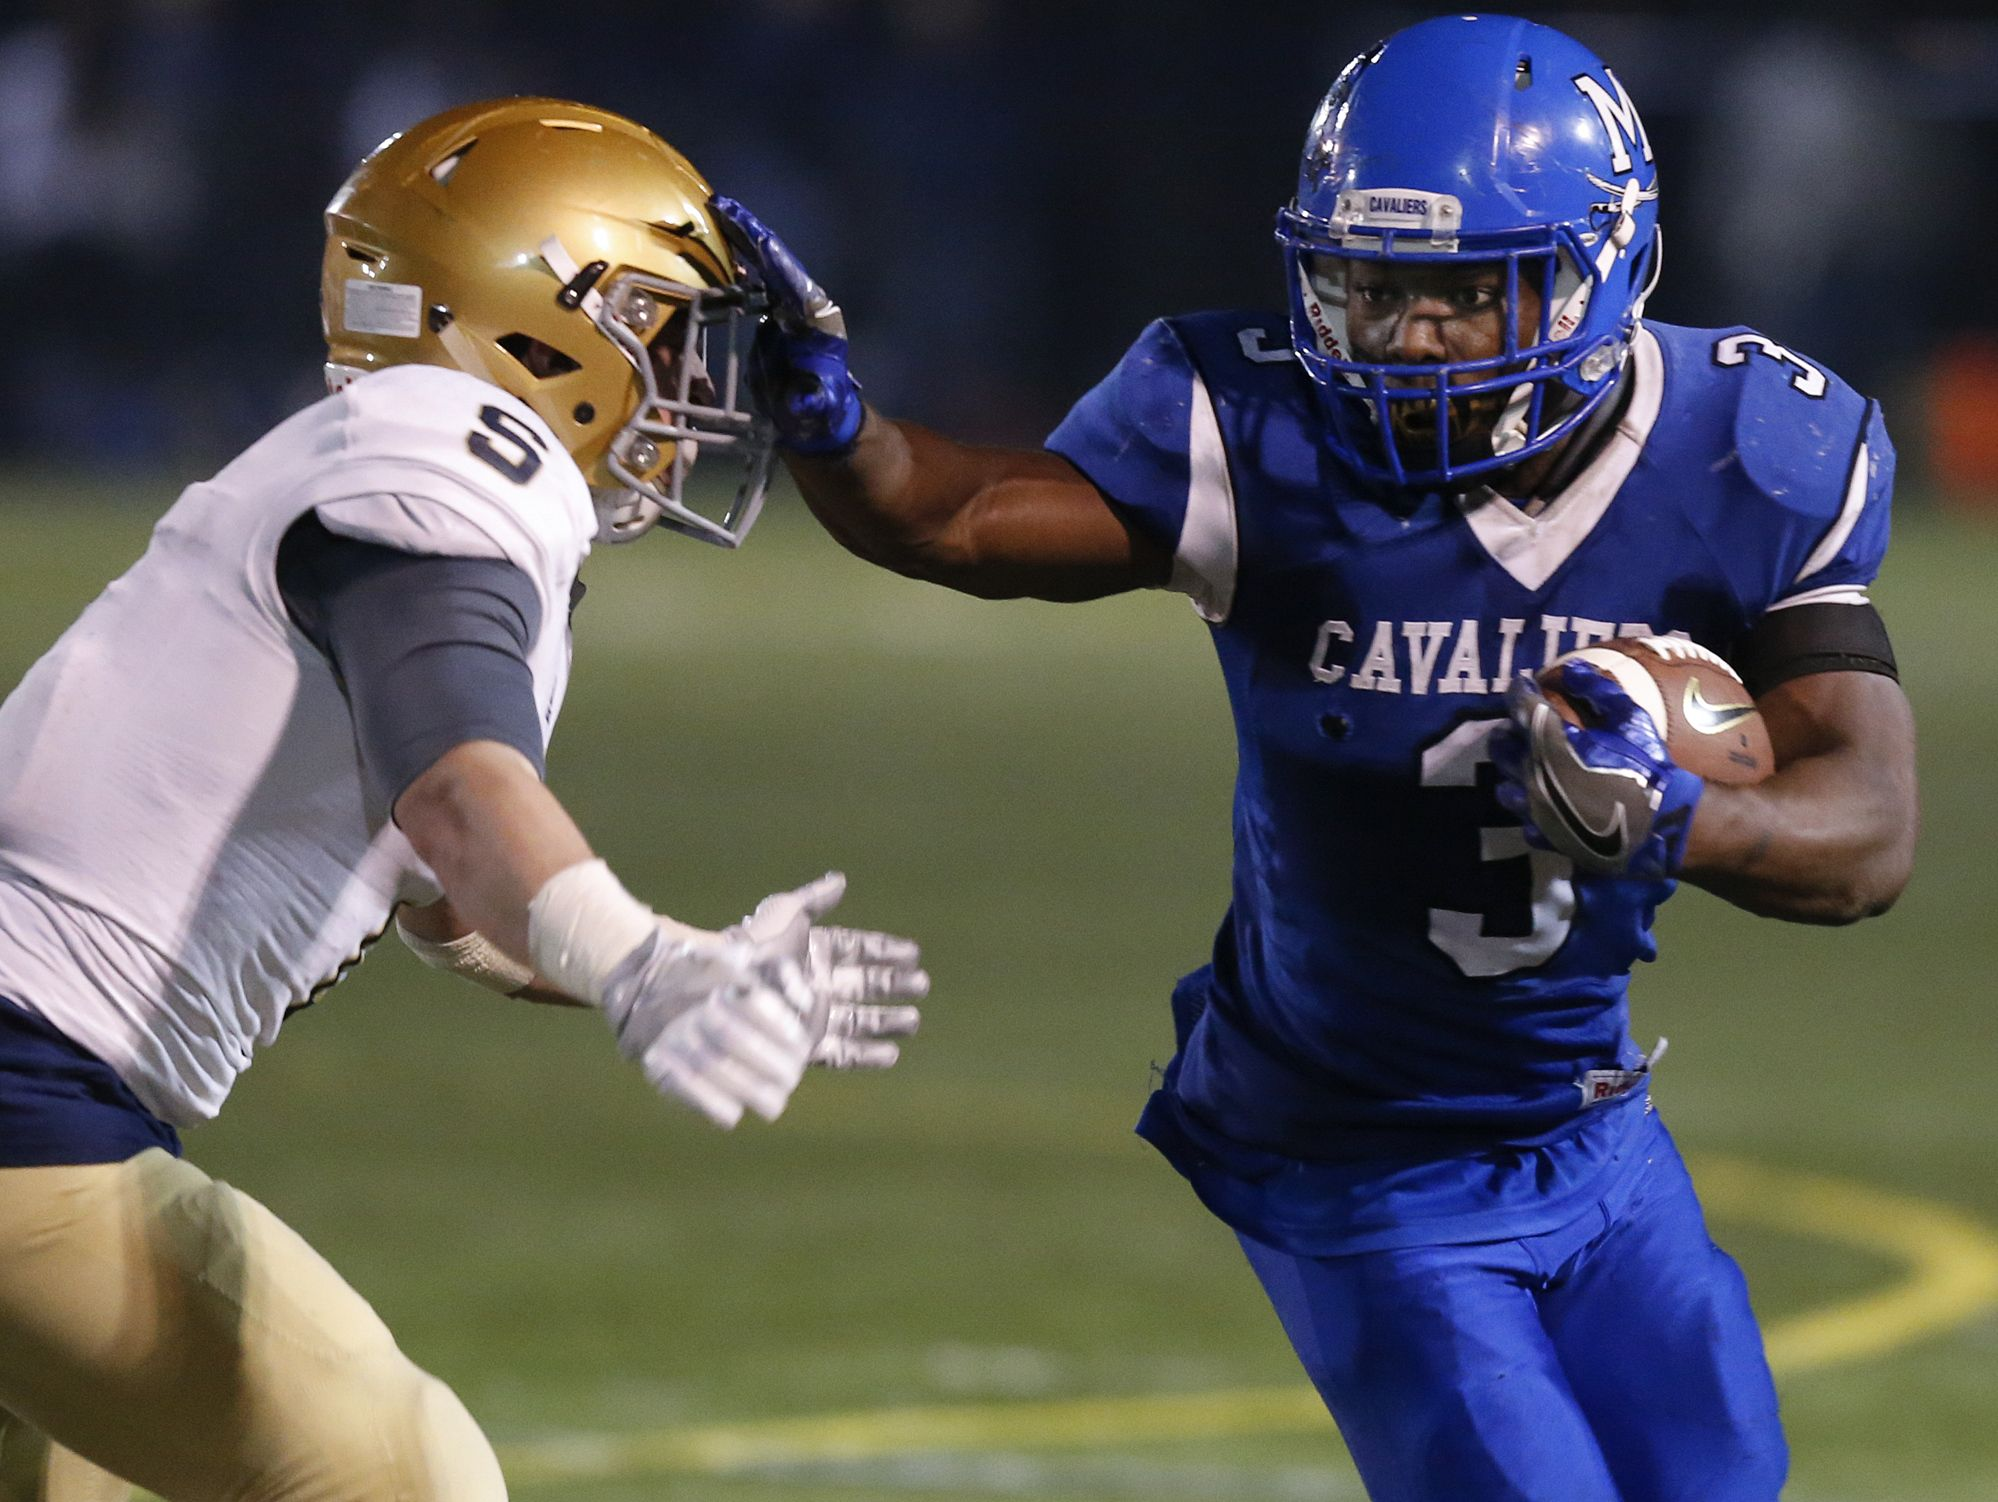 Middletown's Kedrick Whitehead (3) stiff-arms Salesianum's John Andreoli during the Cavaliers' 25-7 victory last Friday in the DIAA Division I semifinals.